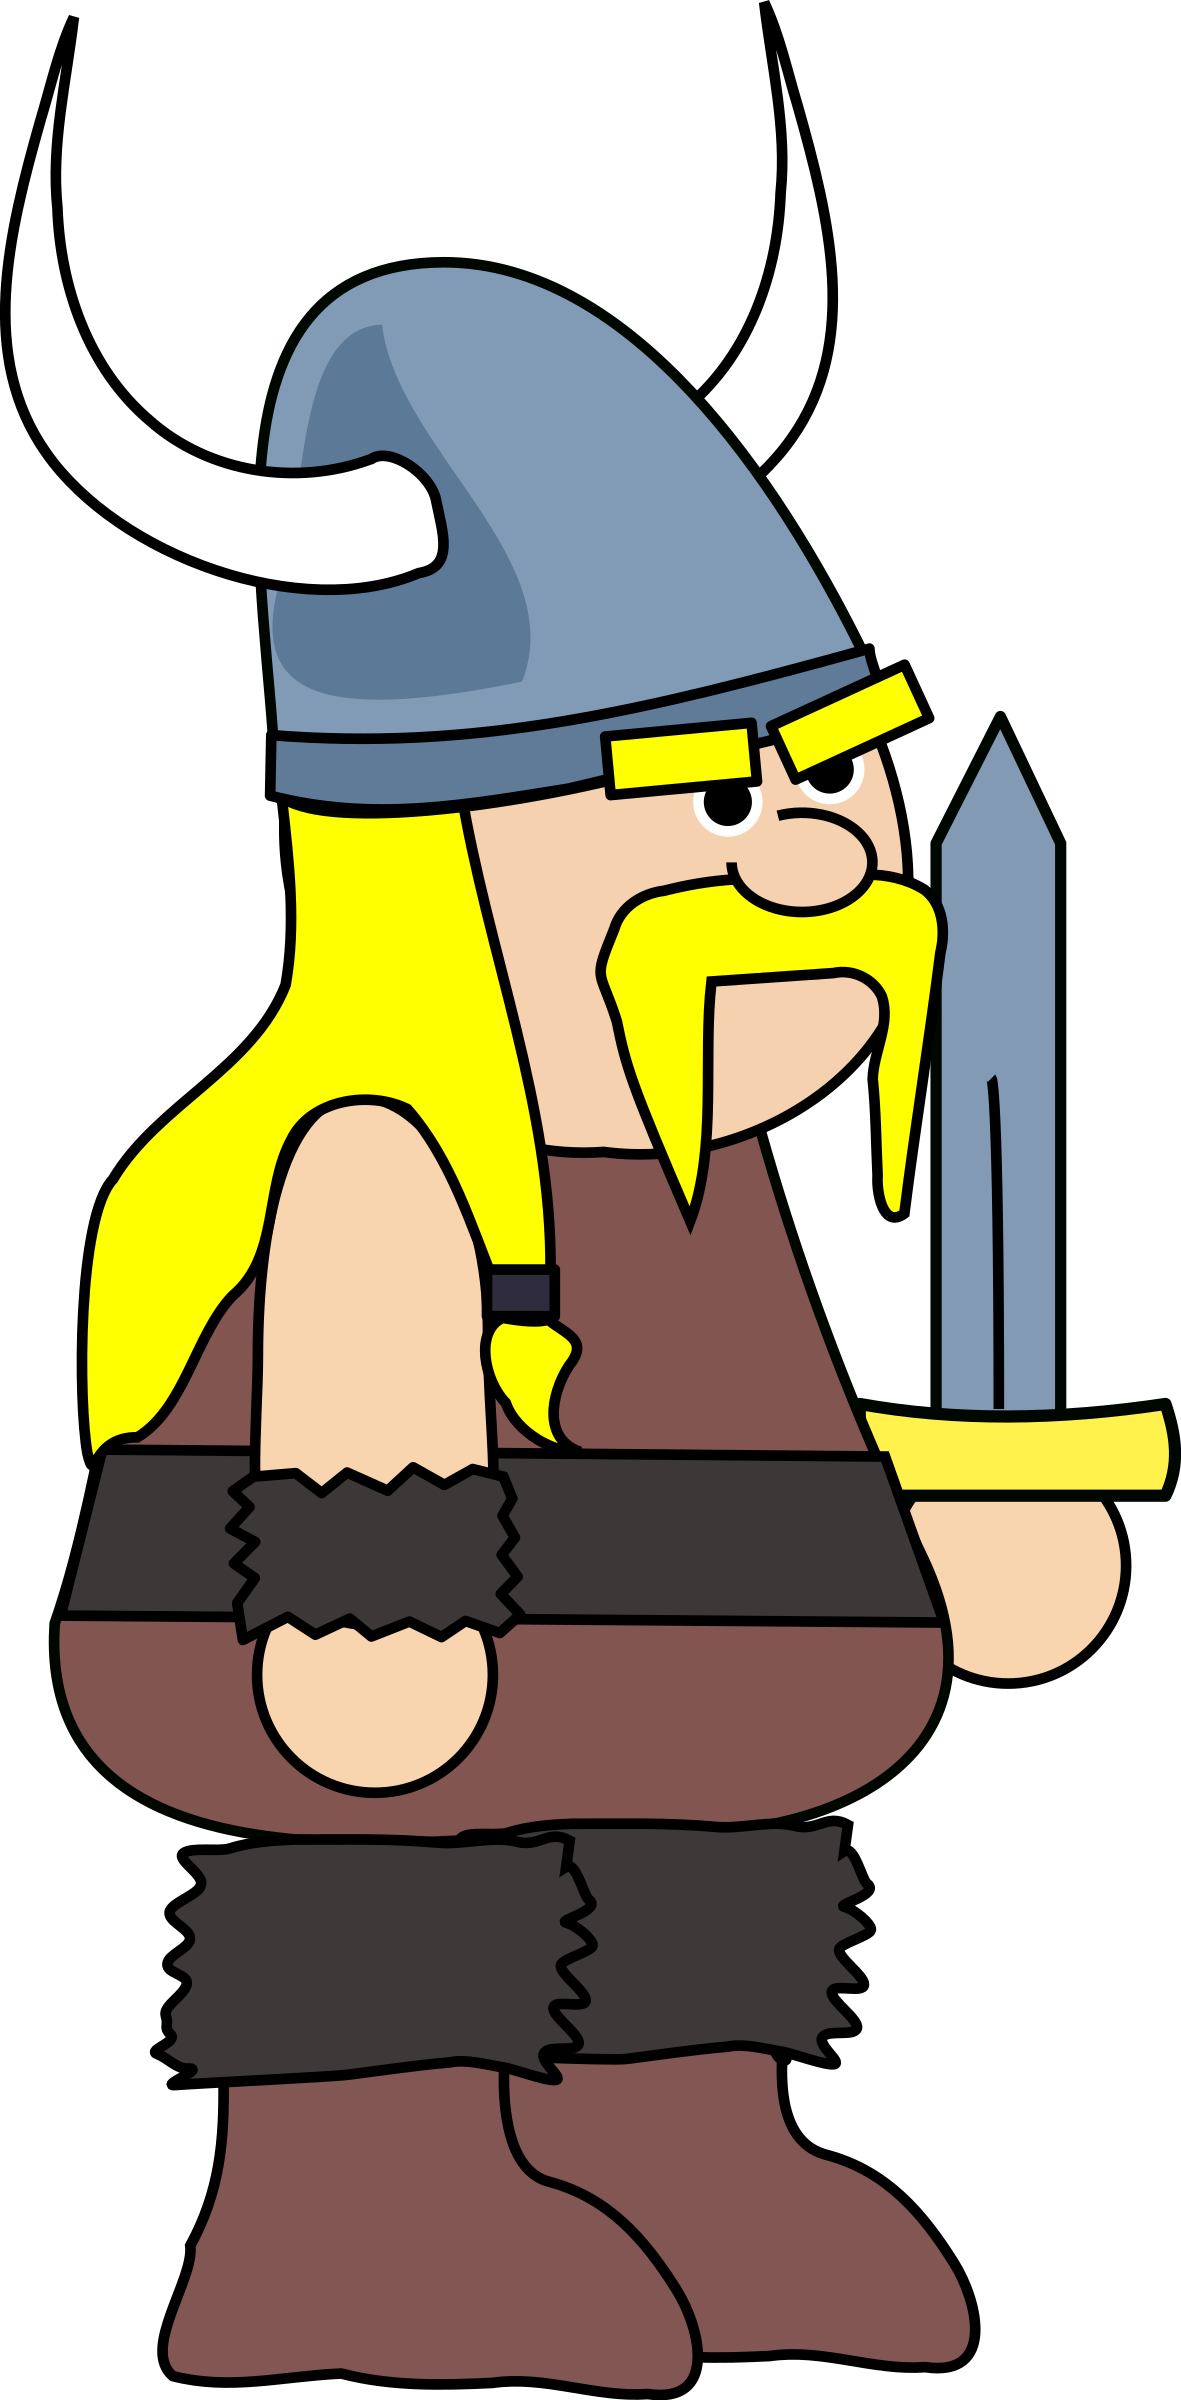 Warrior clipart original. Free download best on